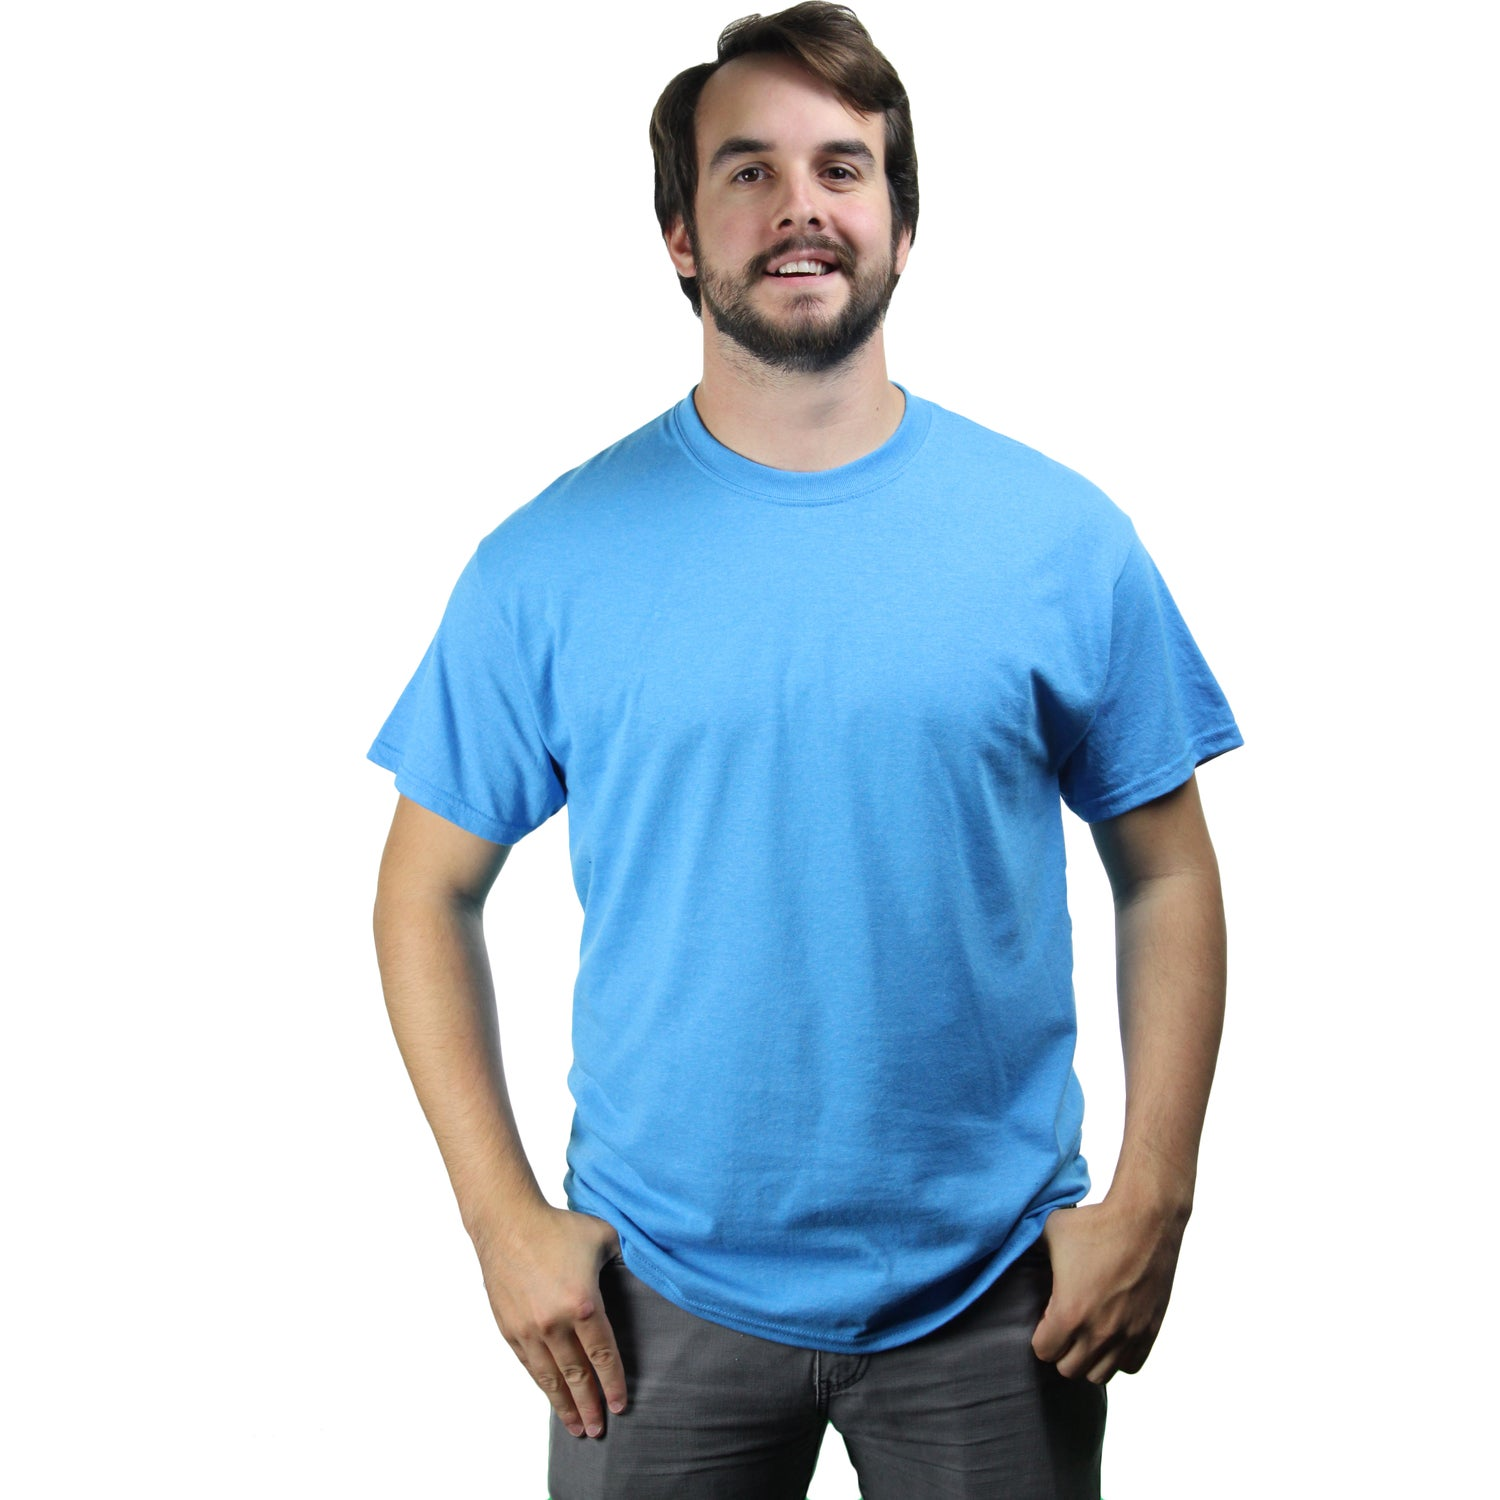 Gildan adult heavy cotton t shirt colors 100 cotton t for Gildan t shirts online